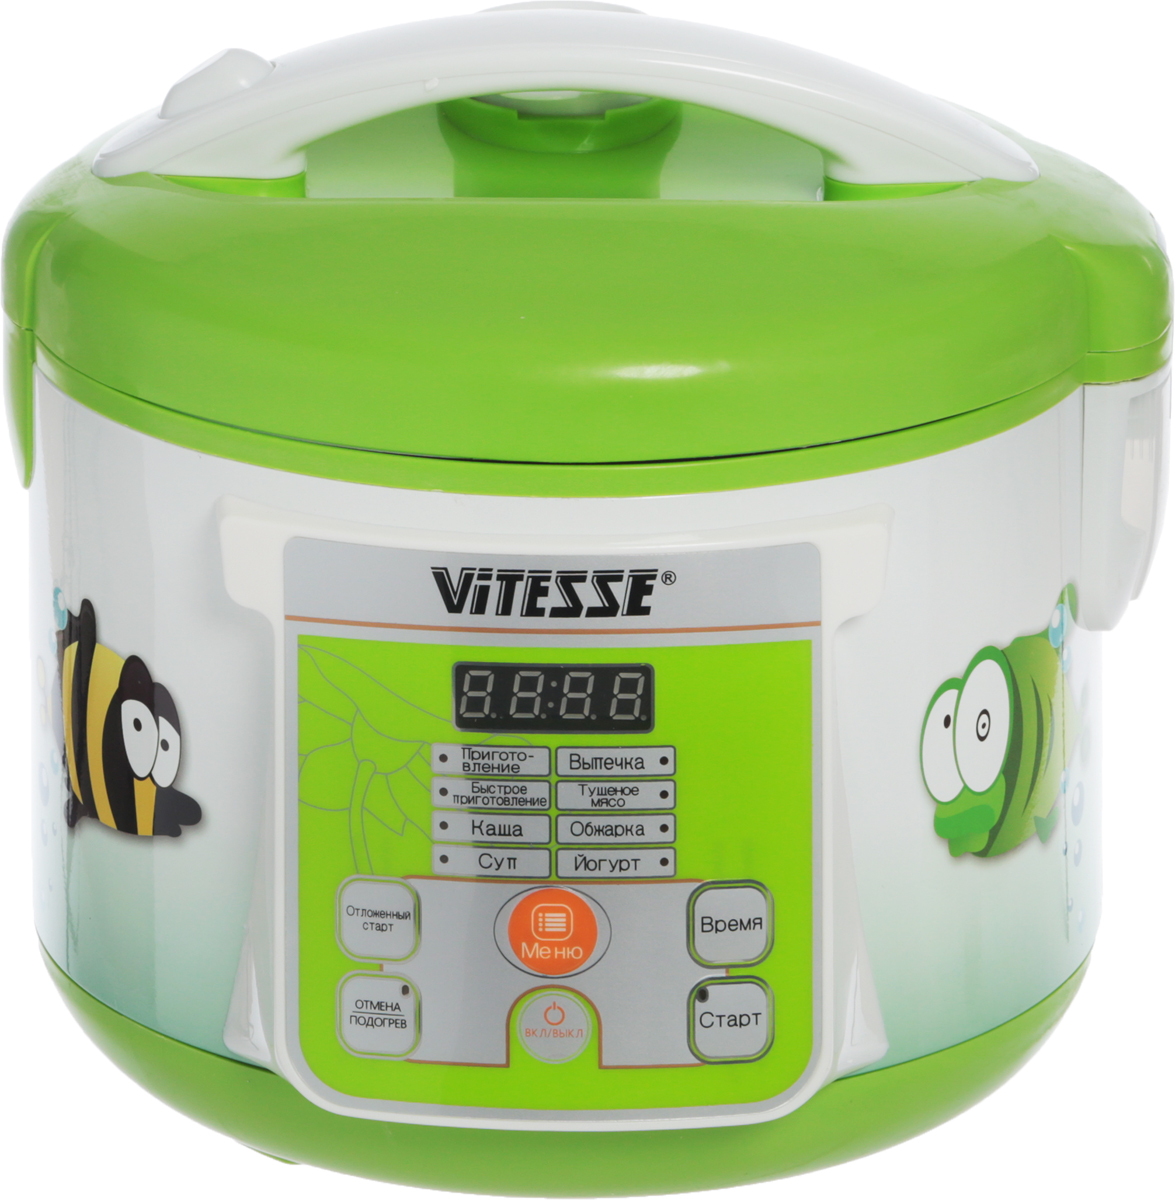 Мультиварка Vitesse VS-585, Light Green недорого